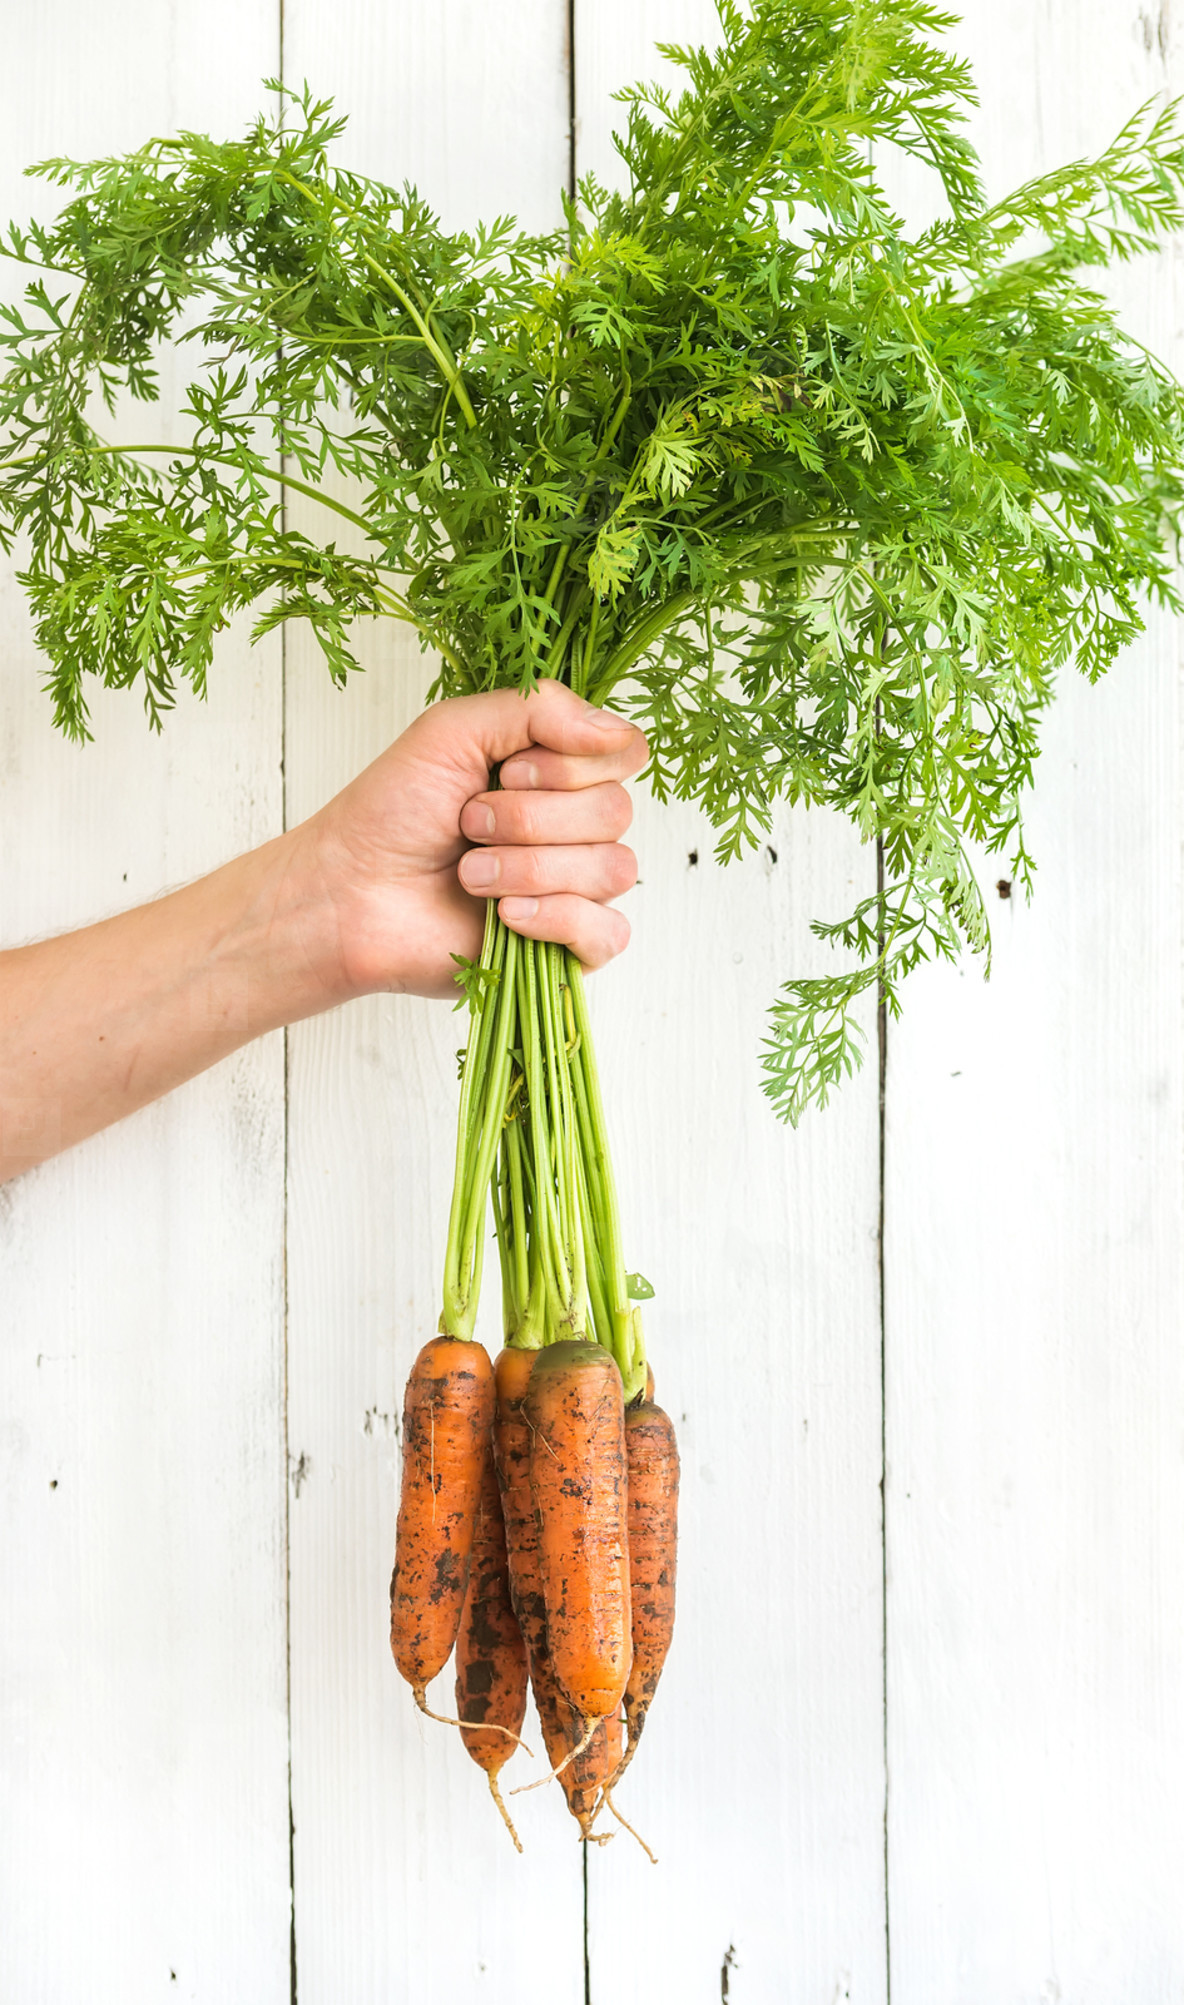 Bunch of fresh garden carrots with green leaves in the hand  white wooden backdrop